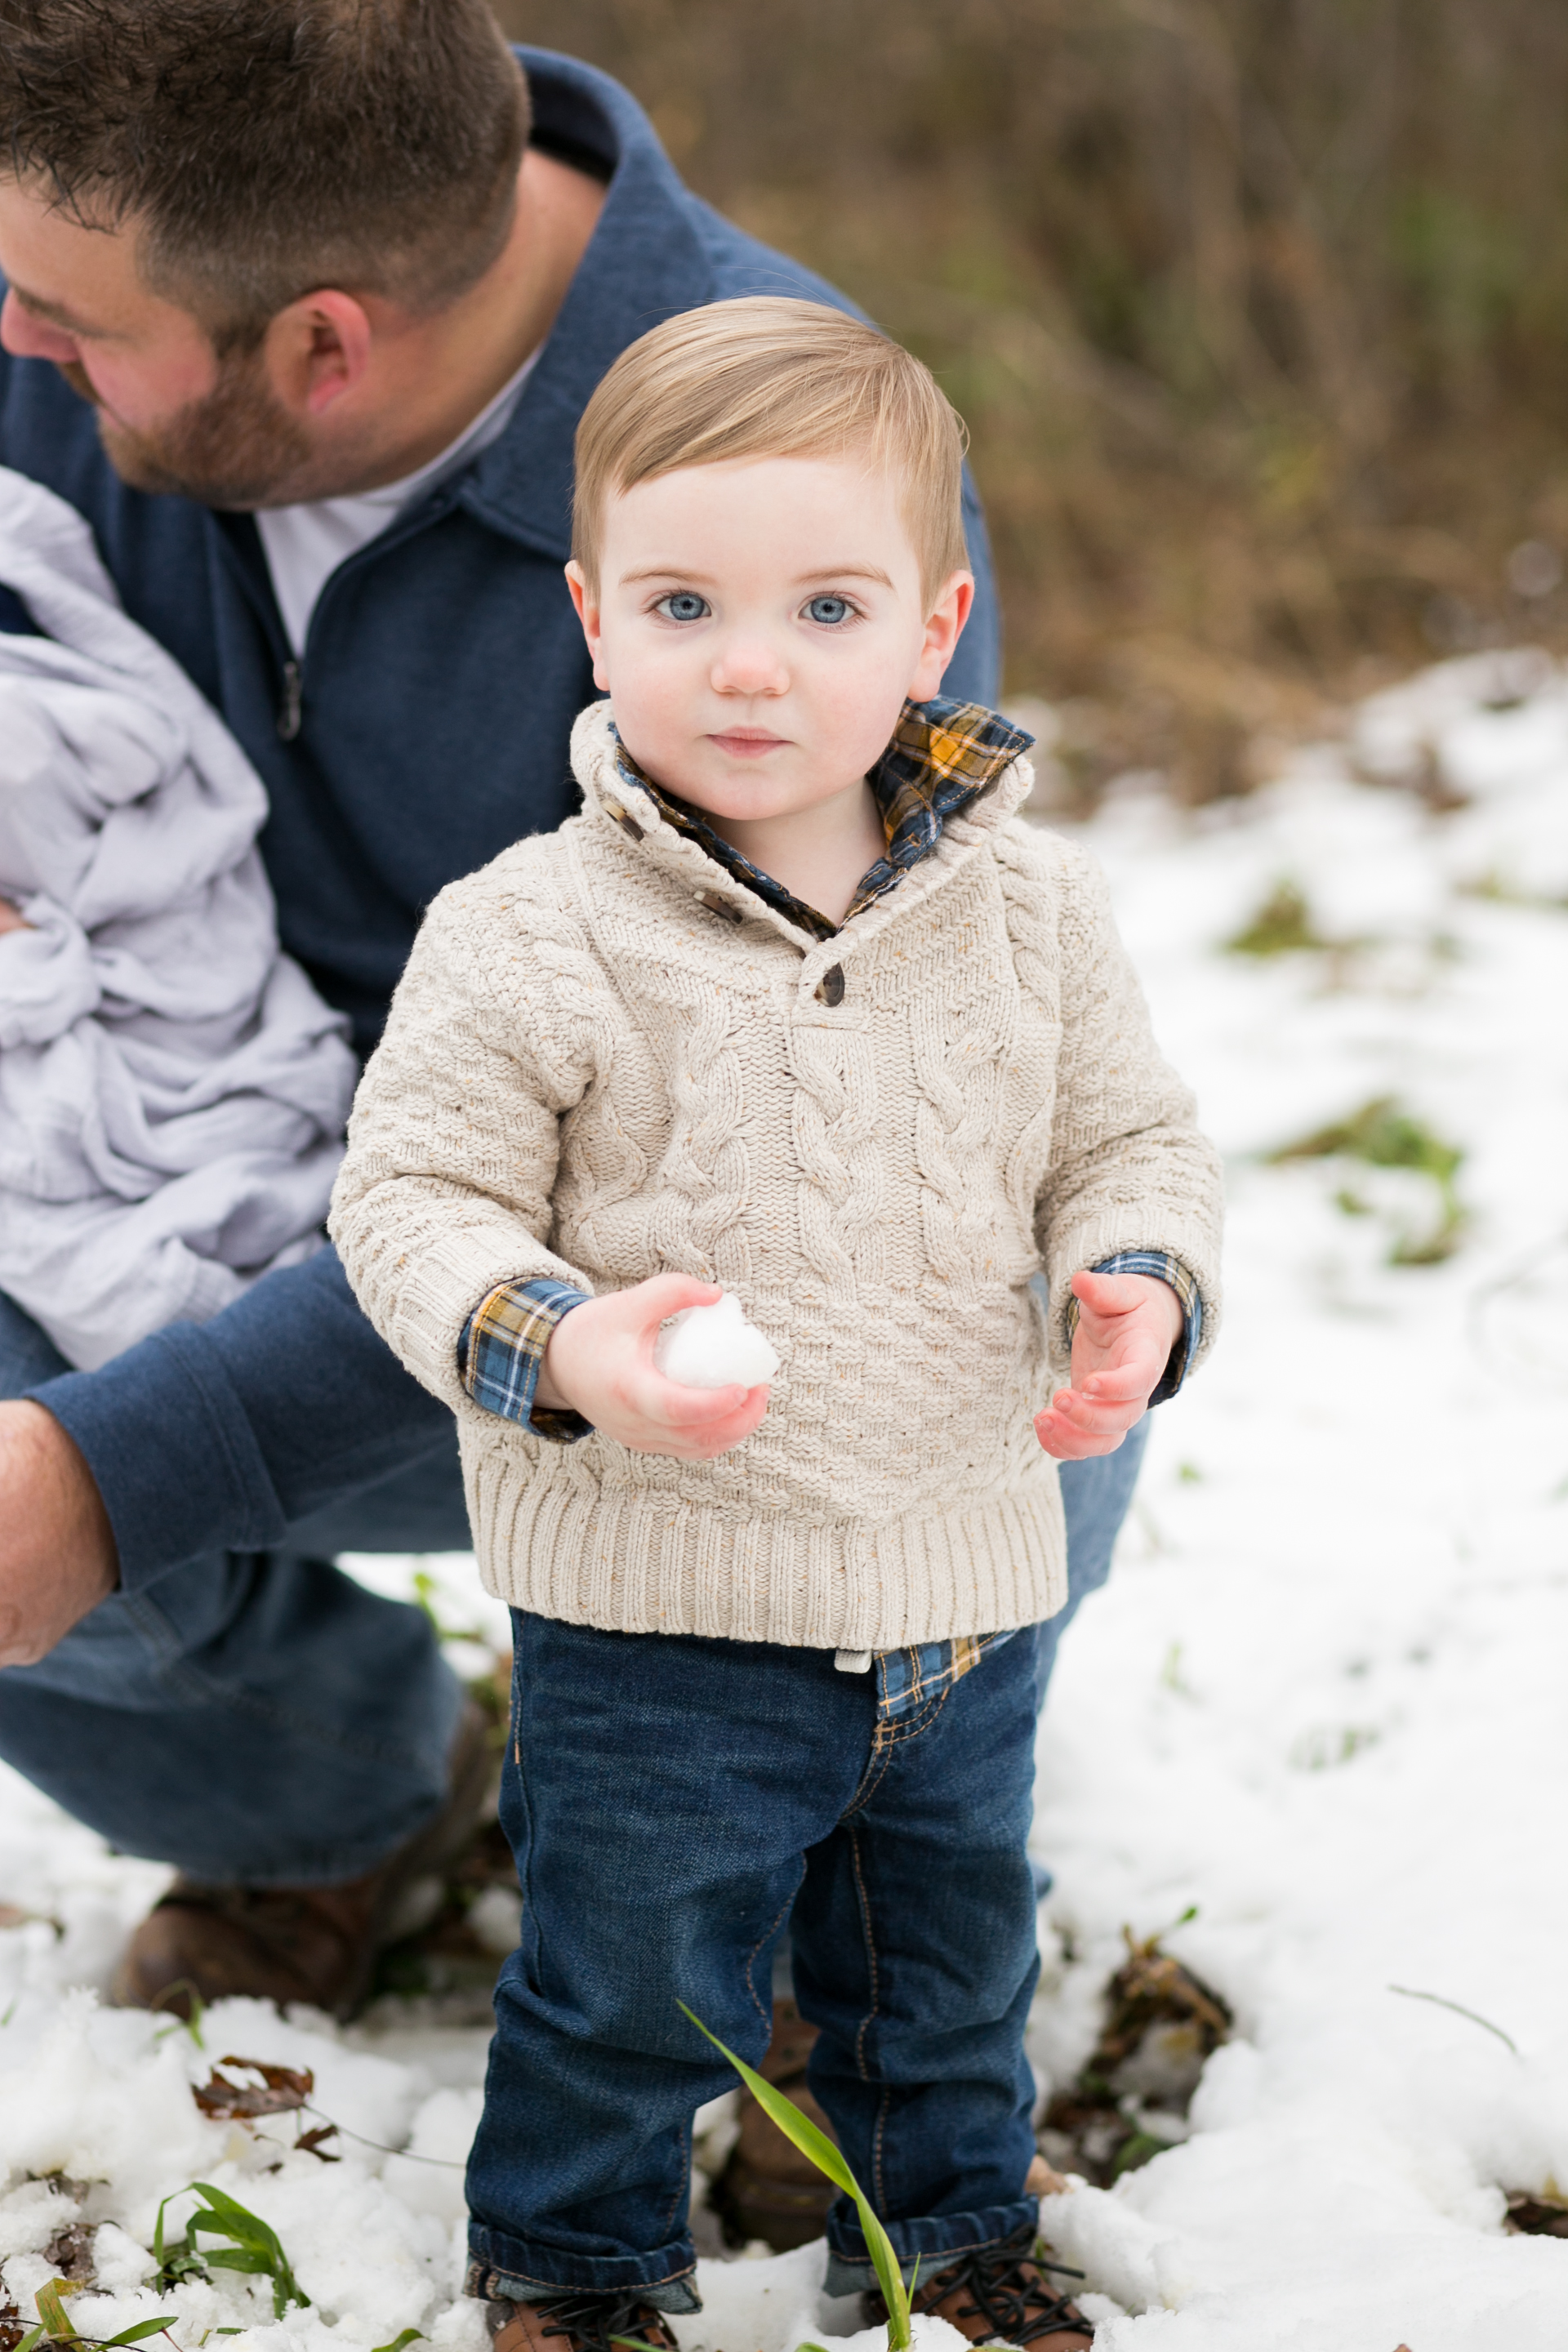 Blaine-Family-Photography (22 of 27).jpg